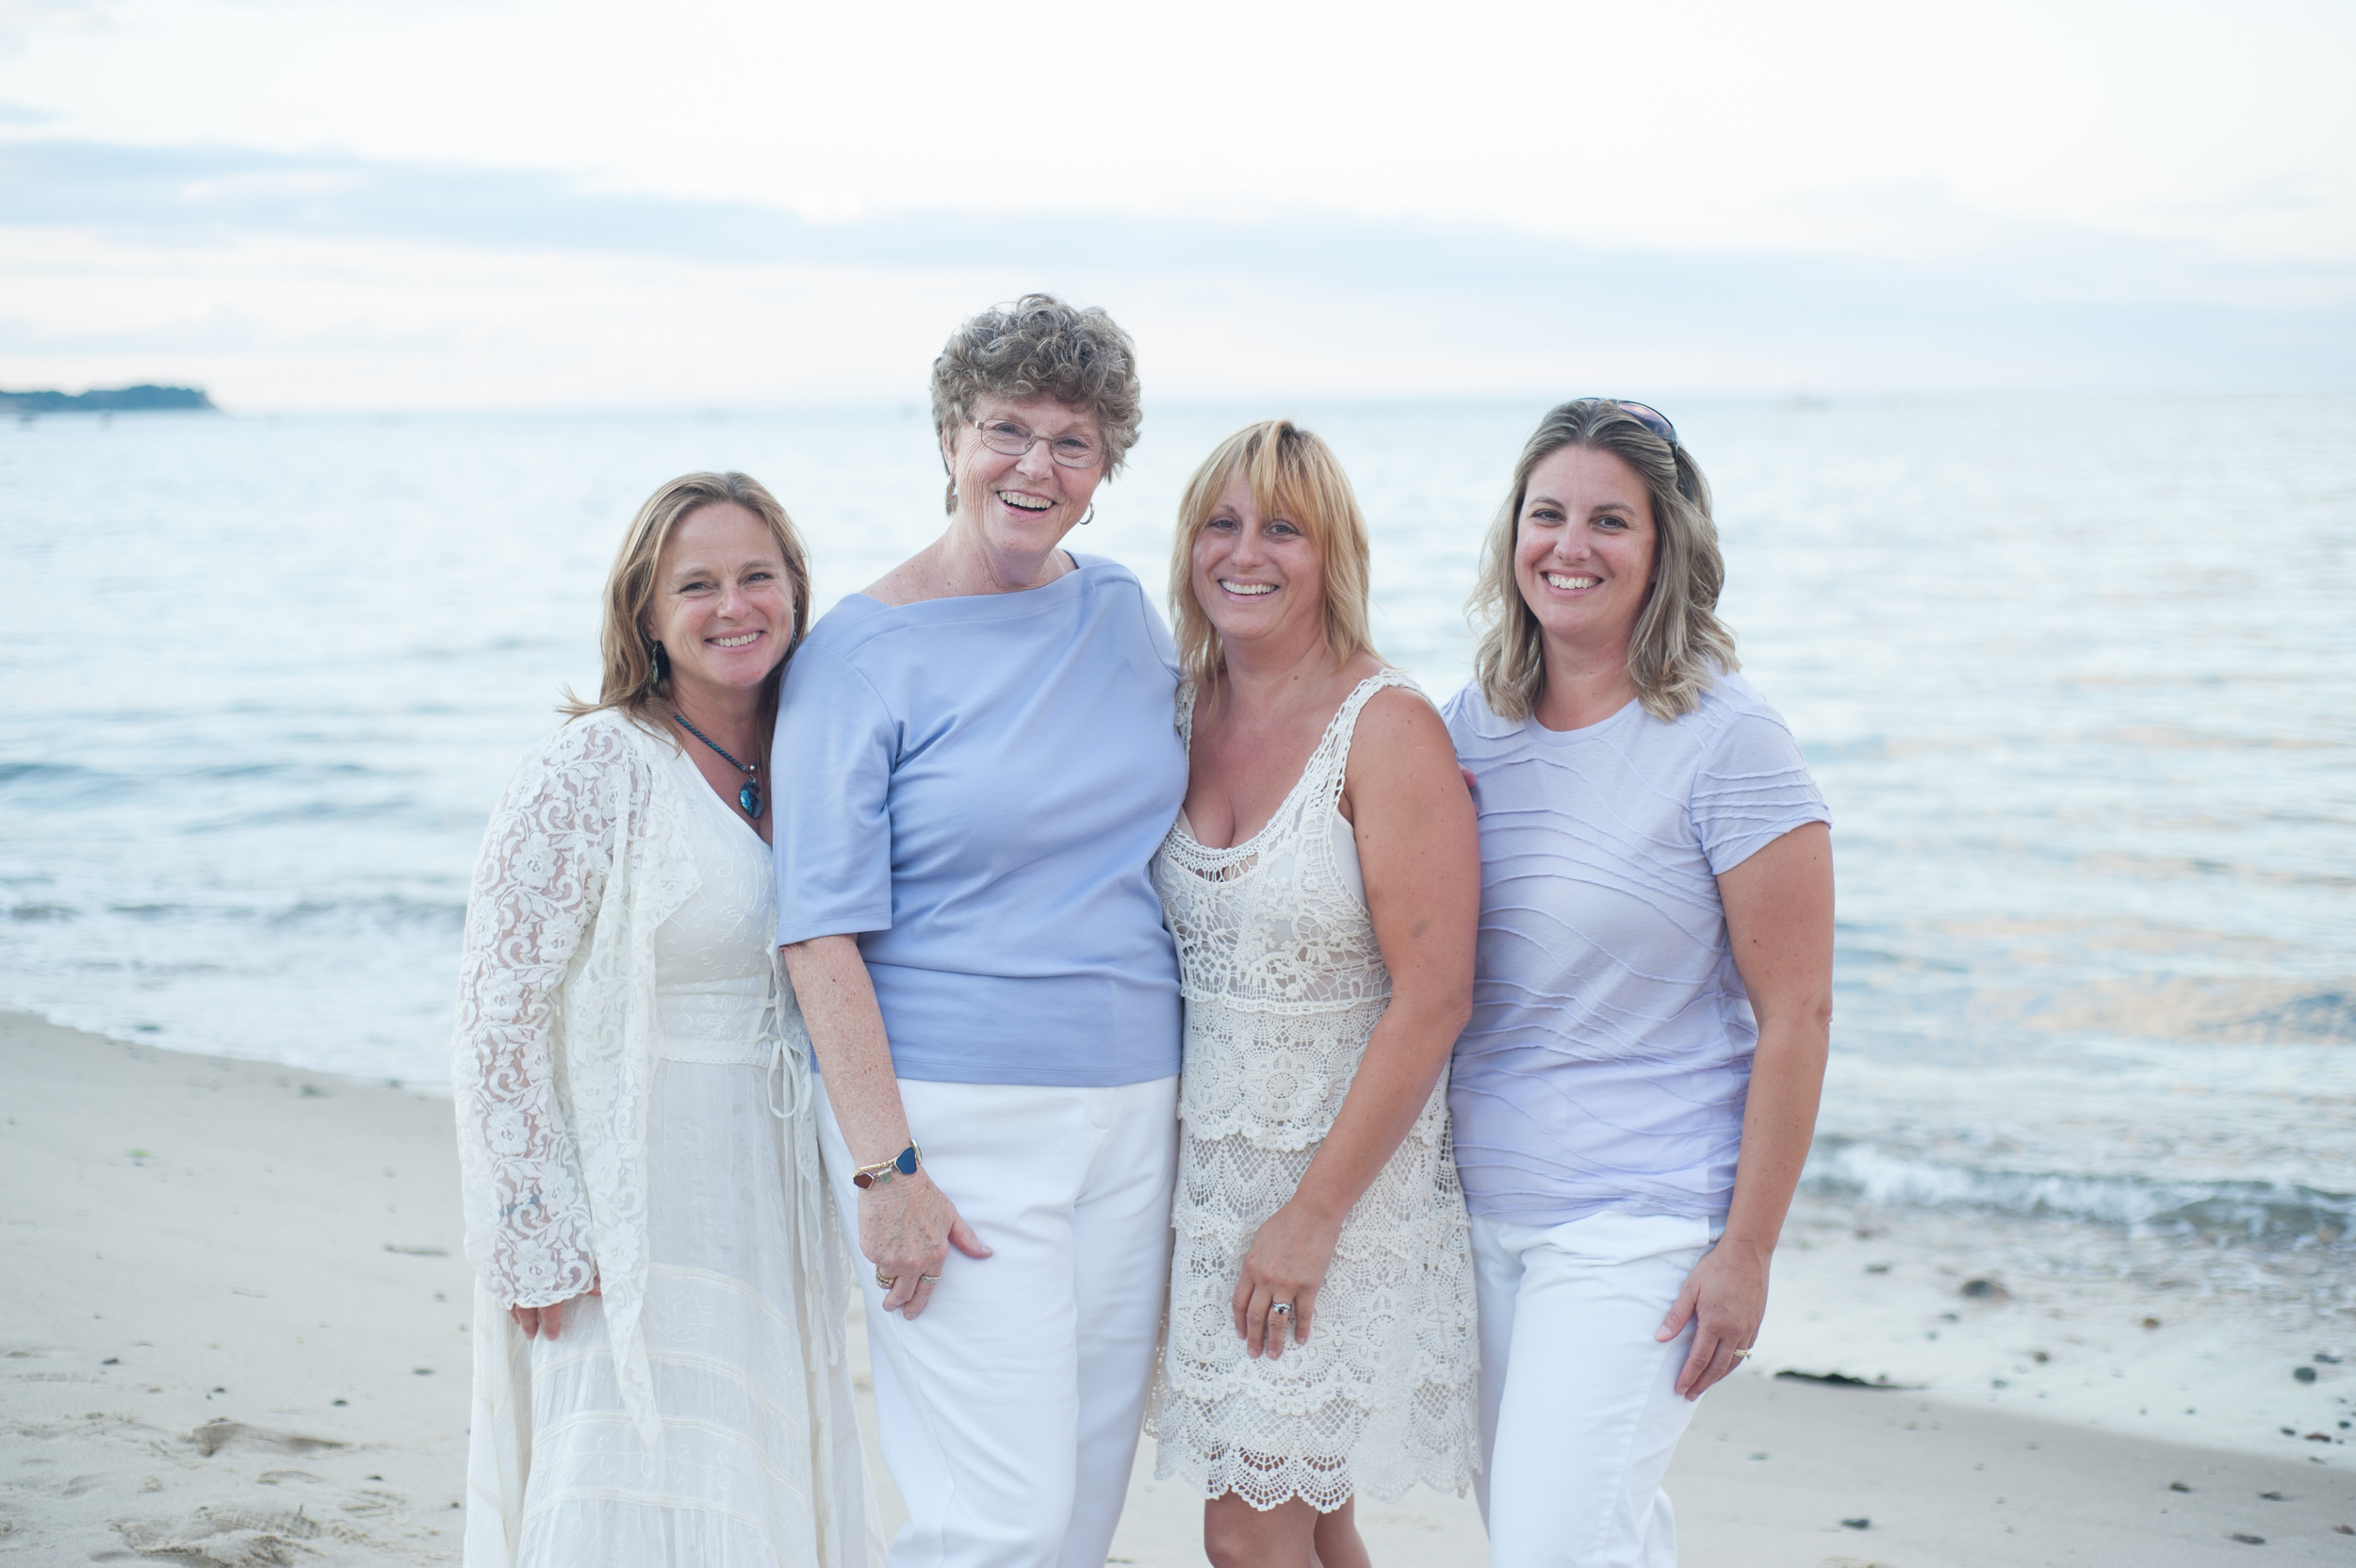 Family Photographer, Family Photographer, Family Photos, Family Reunion Photos, Family Reunion, Beach Photography, Beach Photos, Professional Photographer, Plymouth, South Shore, Portraits, Portrait Photography, Portrait Photographer